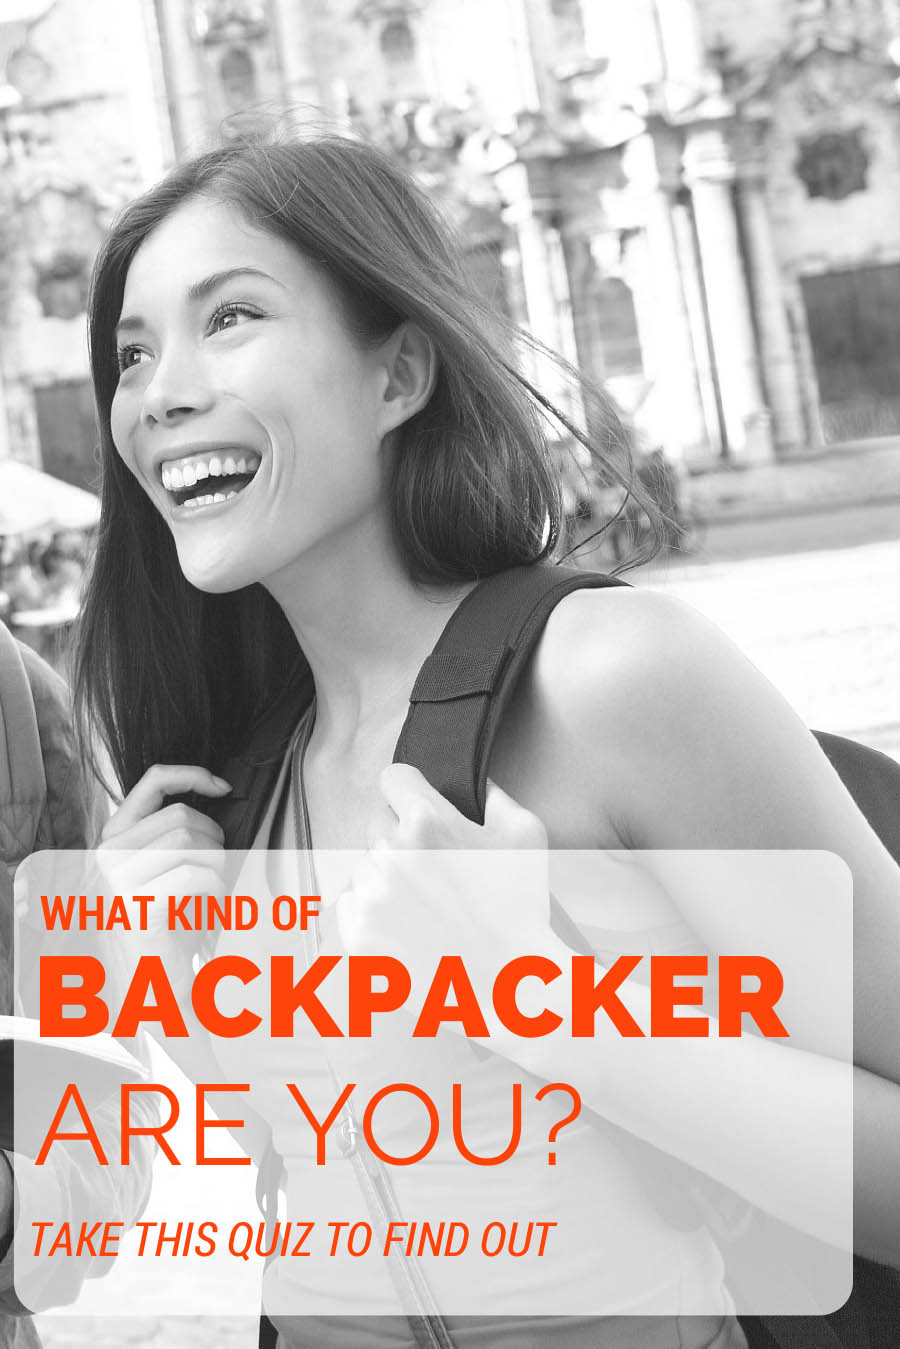 Backpacker Quiz: What Kind of Backpacker Are You?